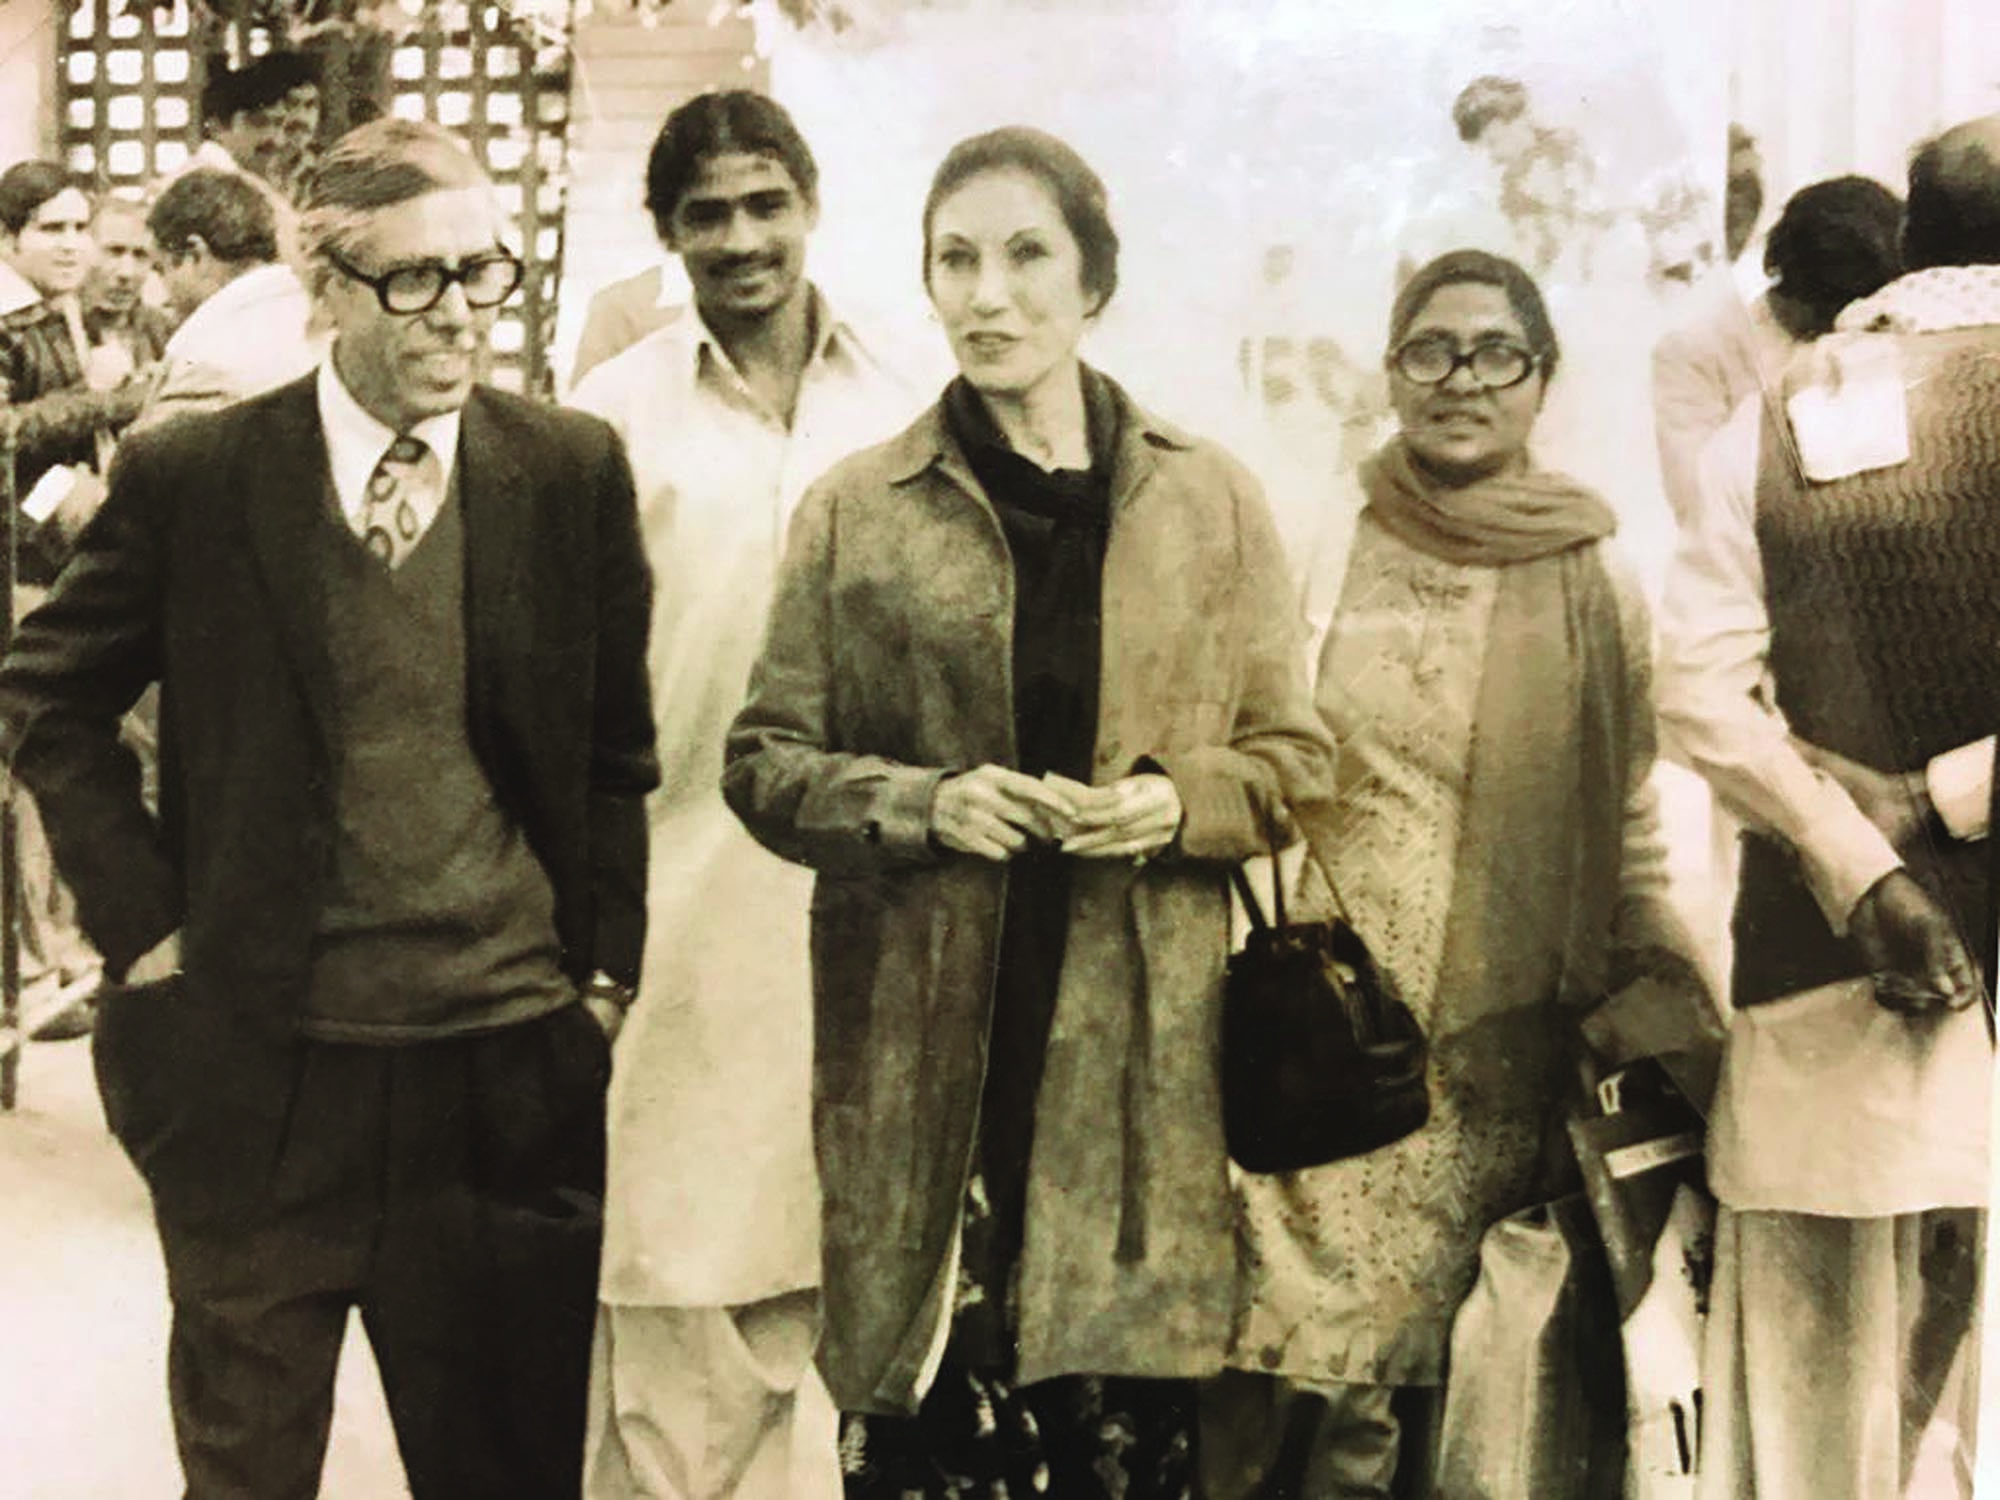 S.G.M. Badruddin with Begum Nusrat Bhutto during his editorship of *Musawat,* the mouthpiece of the Pakistan People's Party (PPP). He later headed *Dawn*'s Economic and Business Review which looked at political economy issues through the prism of the voiceless and with a pronounced sense of social and distributive justice.| Photo: S.G.M. Badruddin Family Archives.